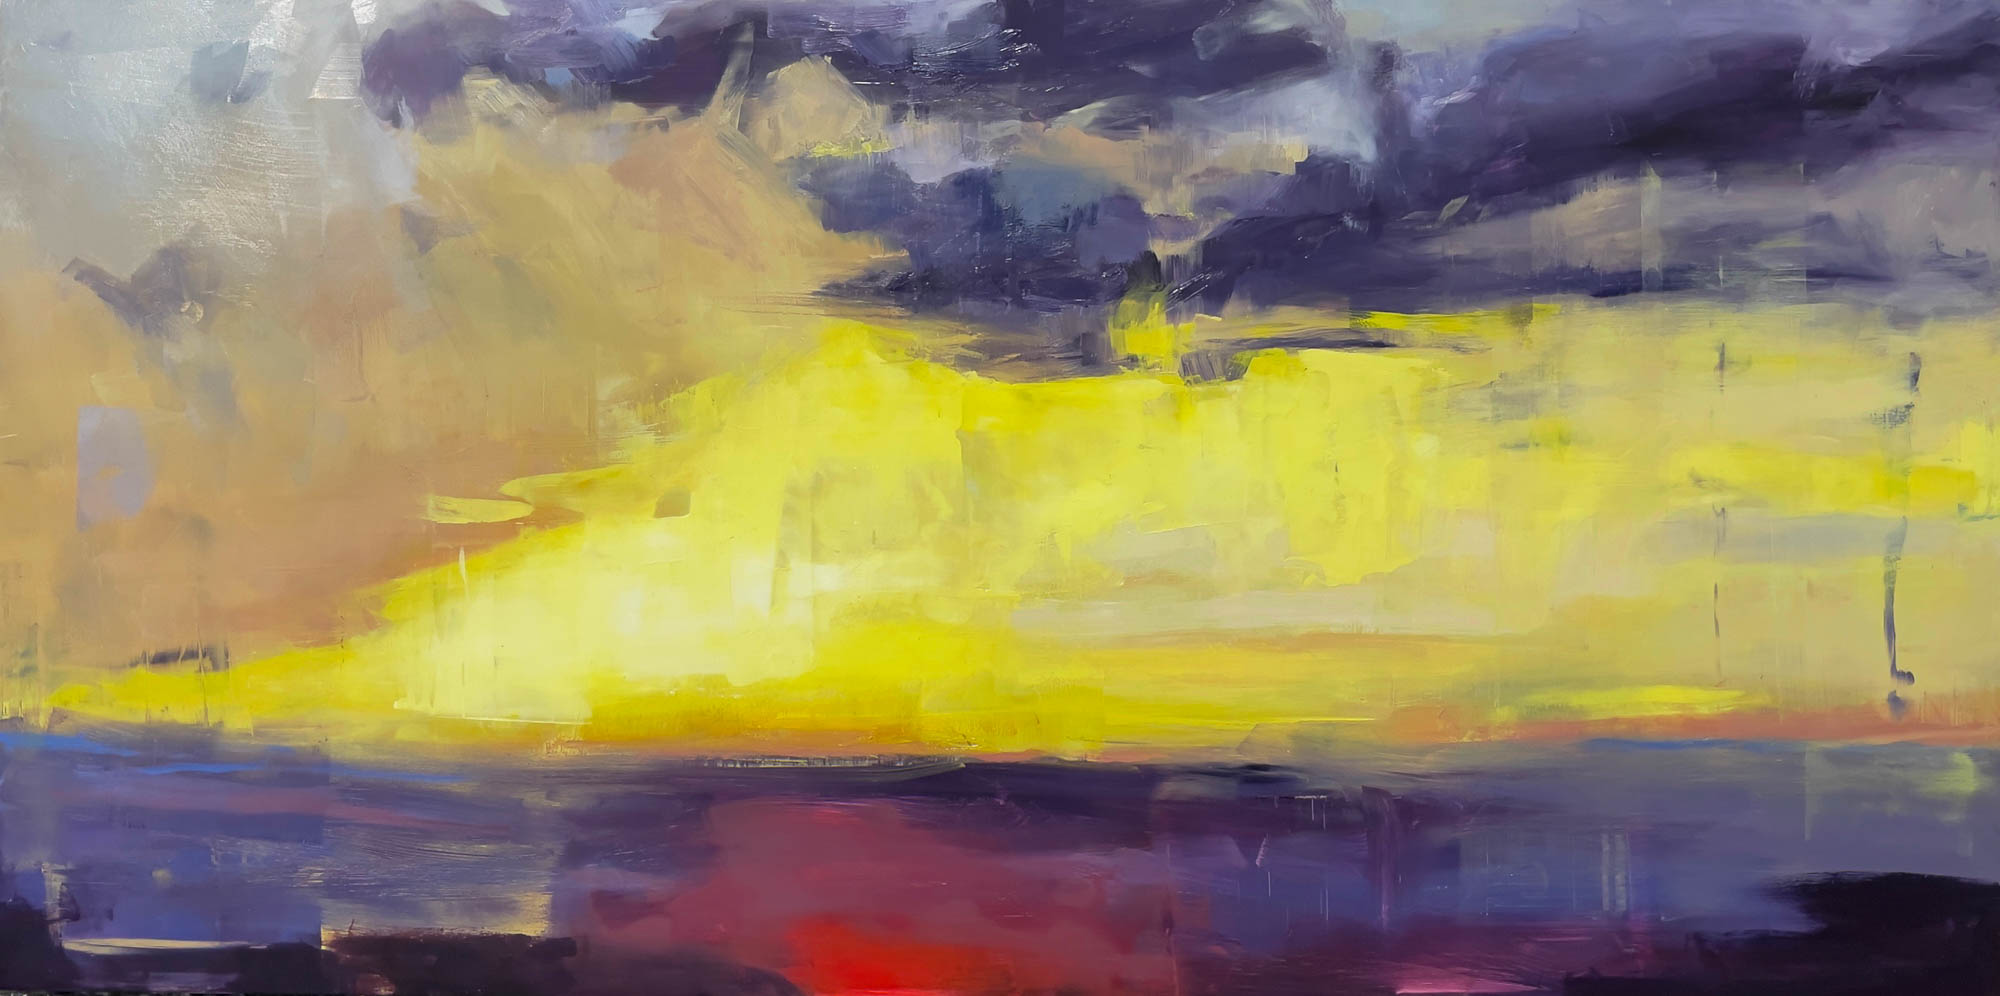 Sunrise 03, 2021, Oil on Panel, 24x36 inches